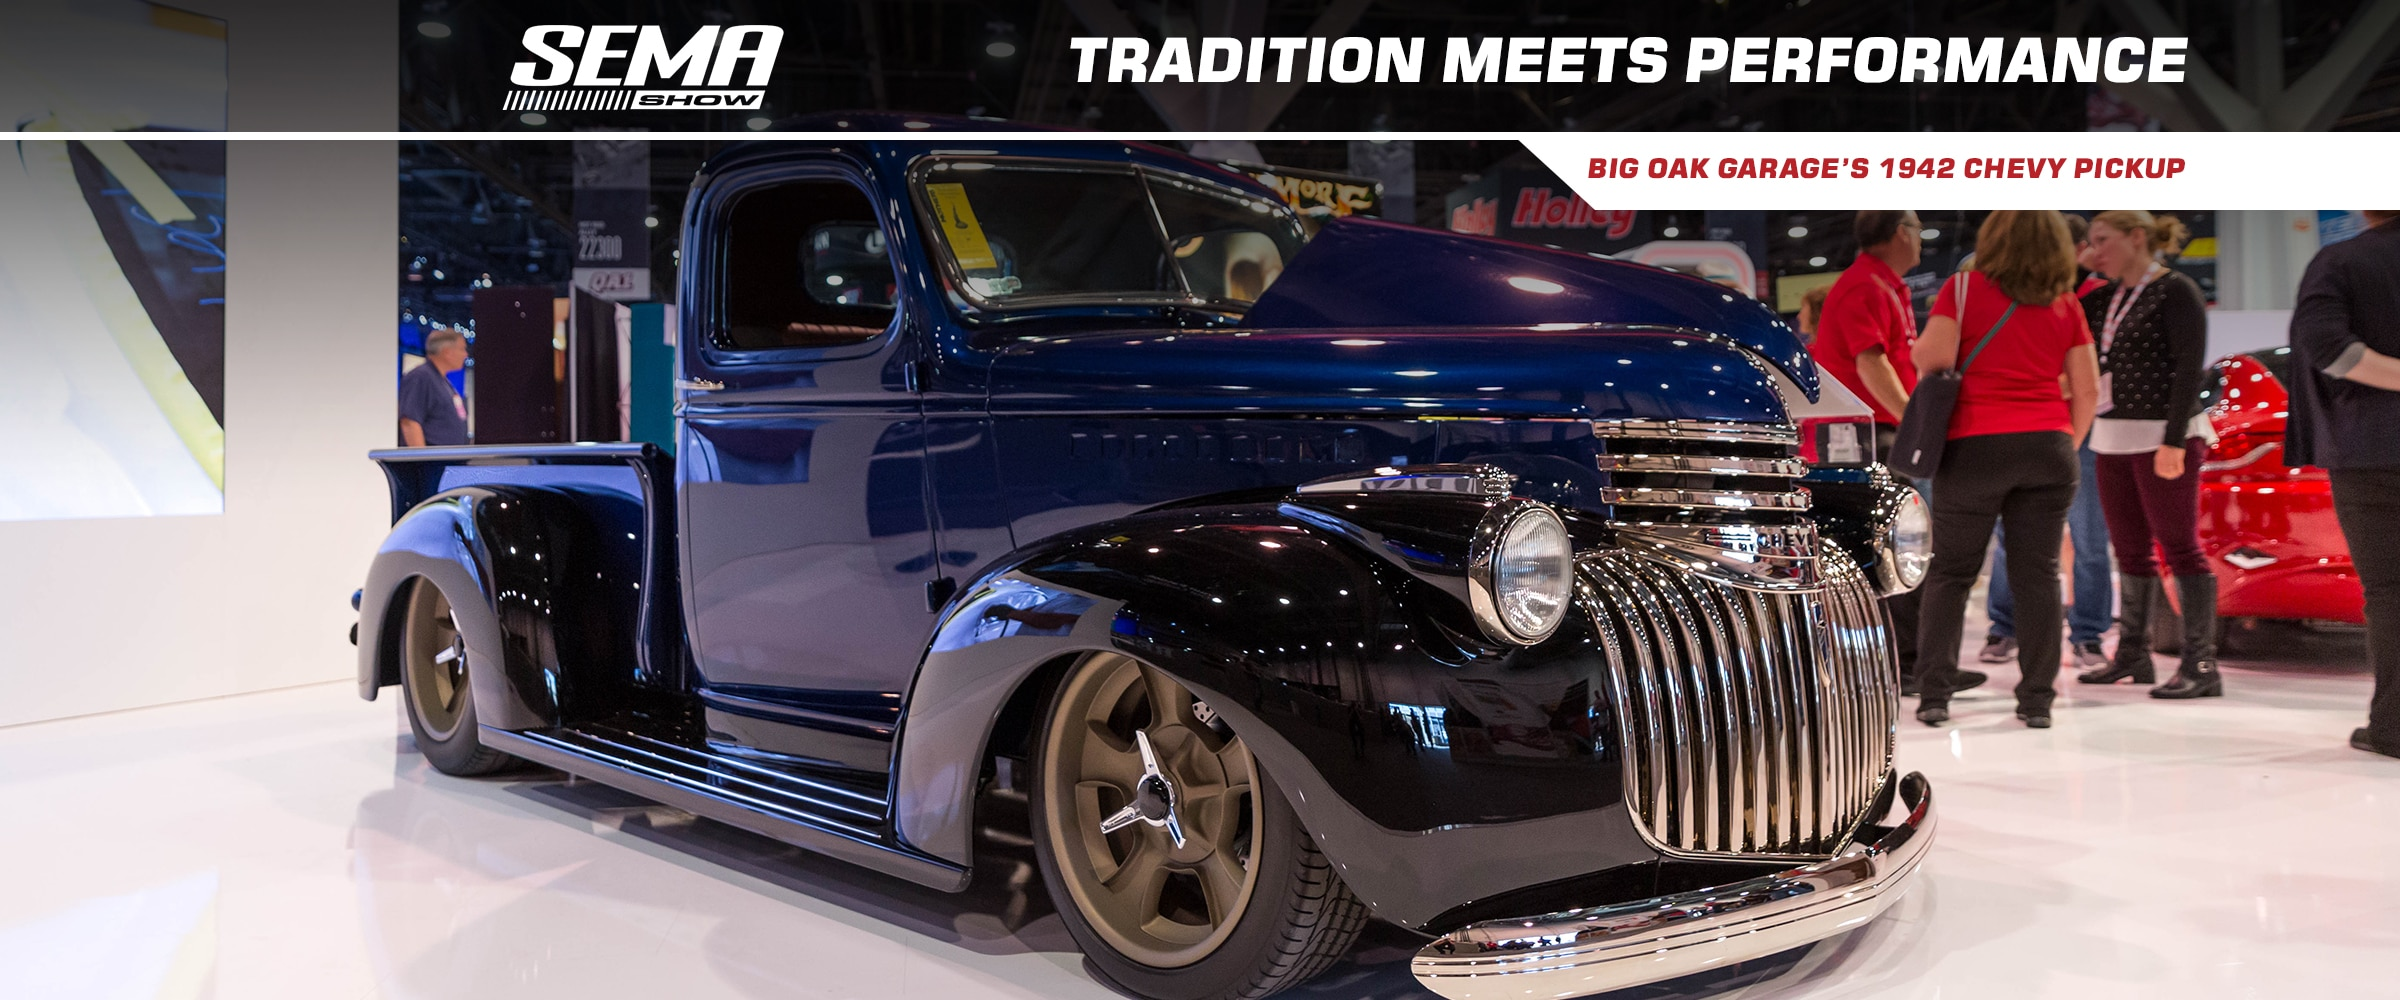 Parts, Vehicles, Events, Chevrolet Performance, Chevy, Chevrolet, Engines, Crate Engines, Ram Jet, Ram Jet 350, Trucks, Chevy Trucks, 1942 Chevy Truck, Big Oak Garage, SEMA, SEMA Show